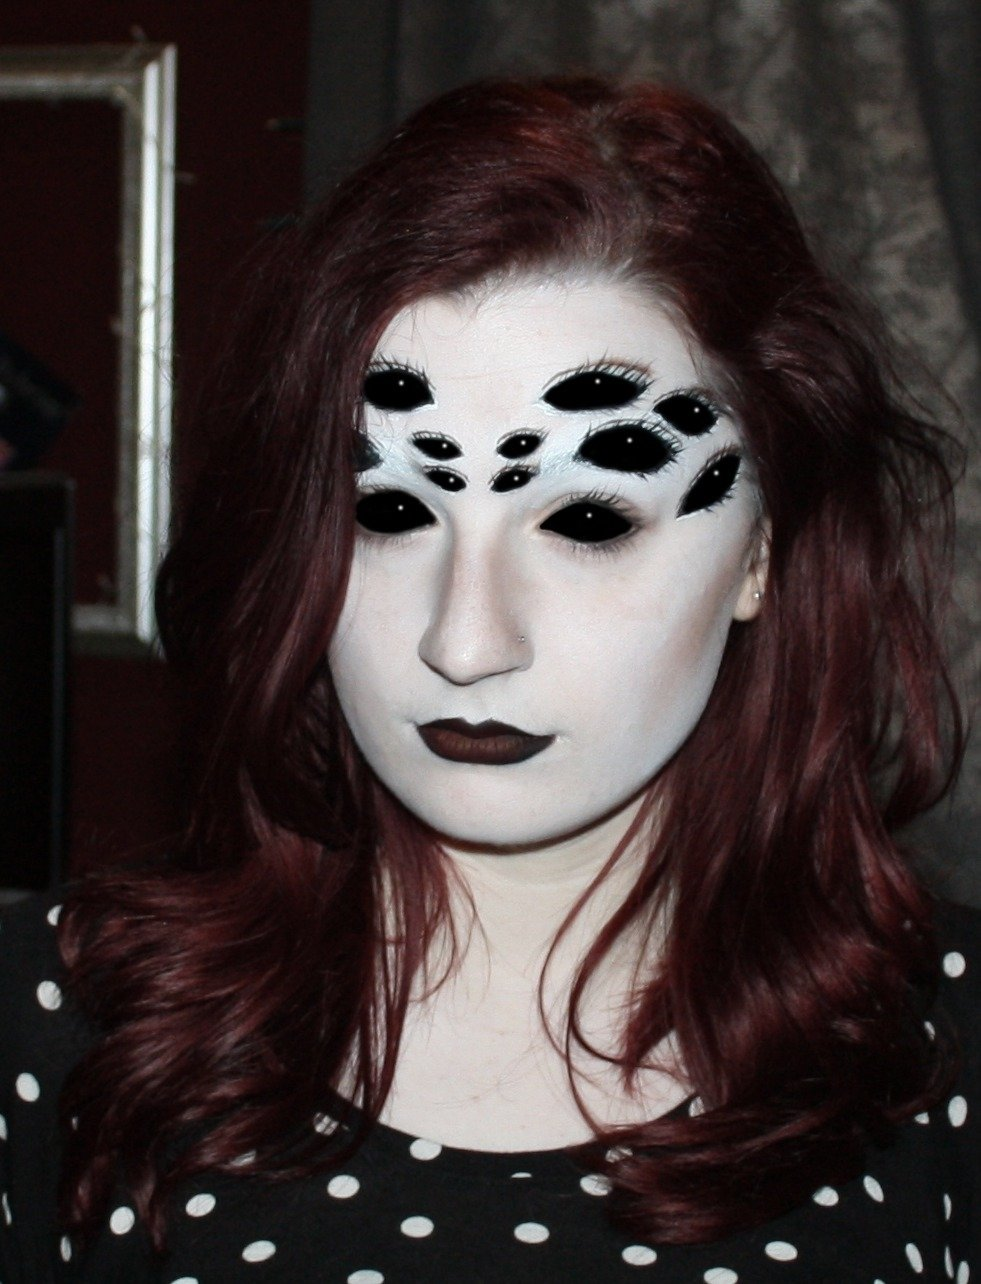 10 Best Cool Halloween Face Paint Ideas creepy spider eyes make up design perfect for halloween 3 2020